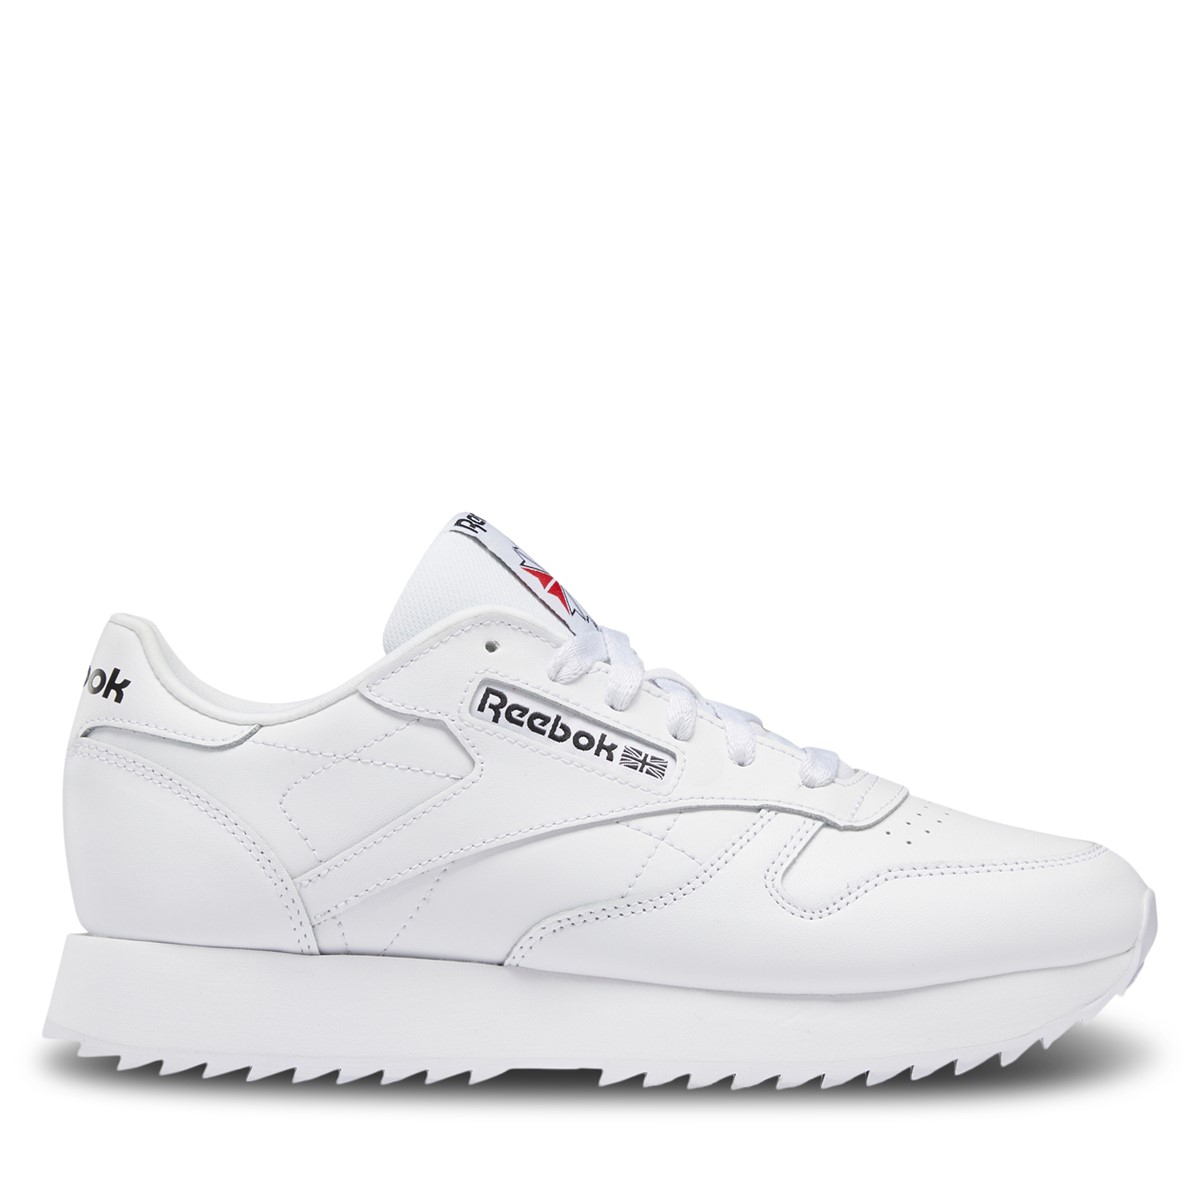 Women's Classic Leather Ripple Sneakers in White